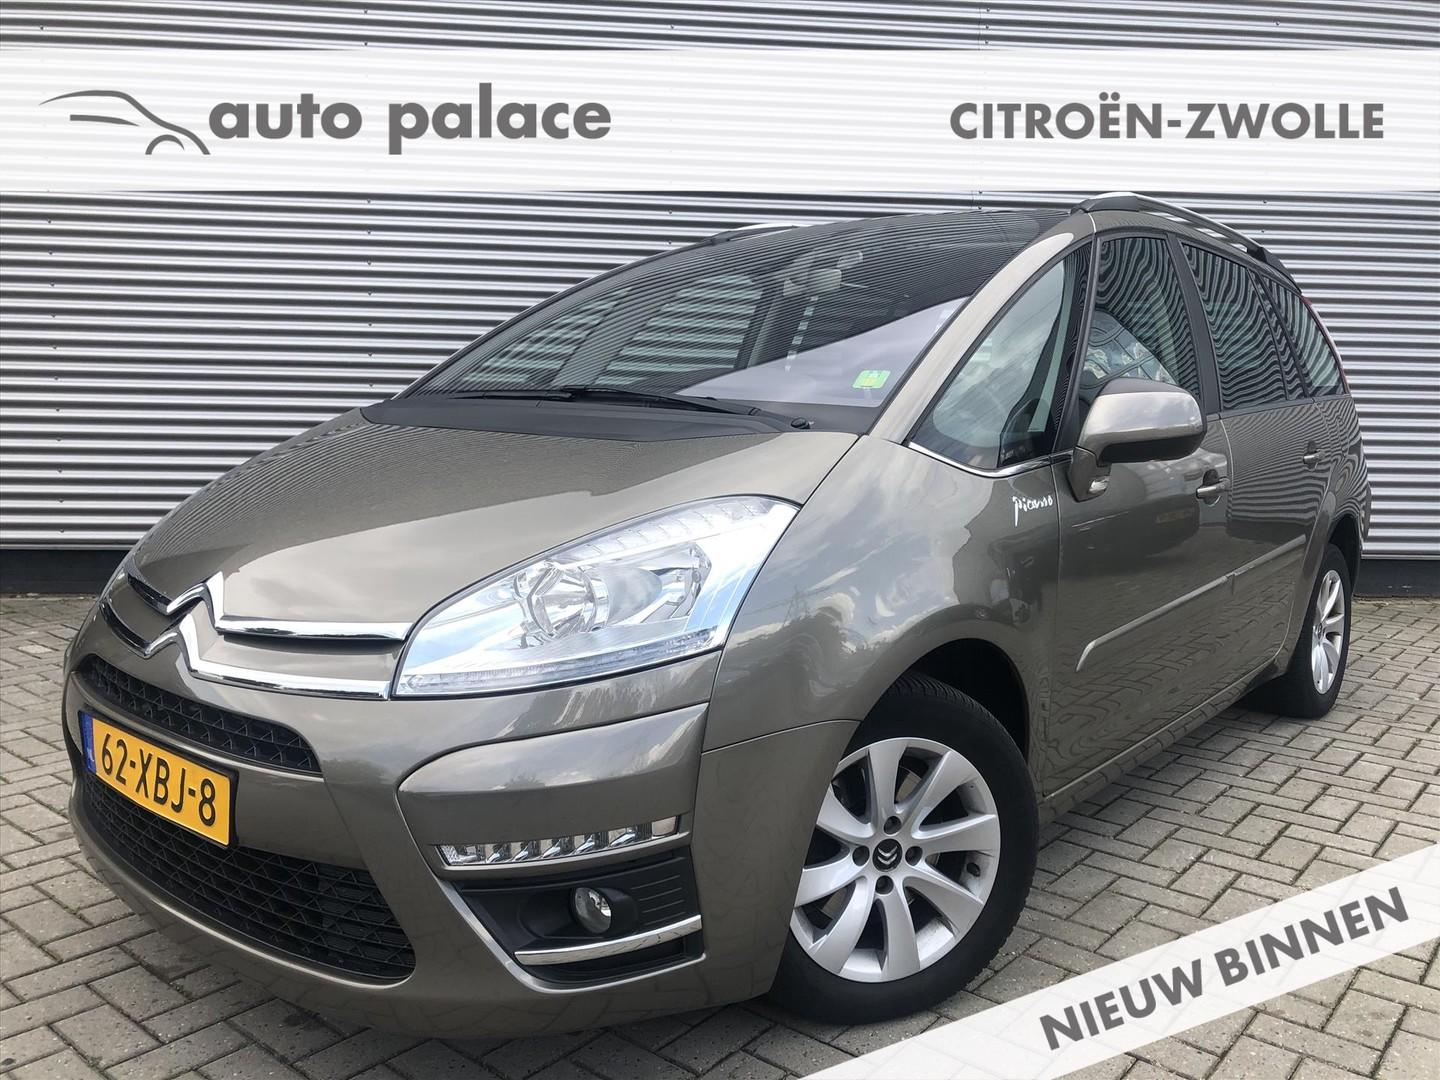 Citroën Grand c4 picasso Thp 156pk automaat 7persoons business